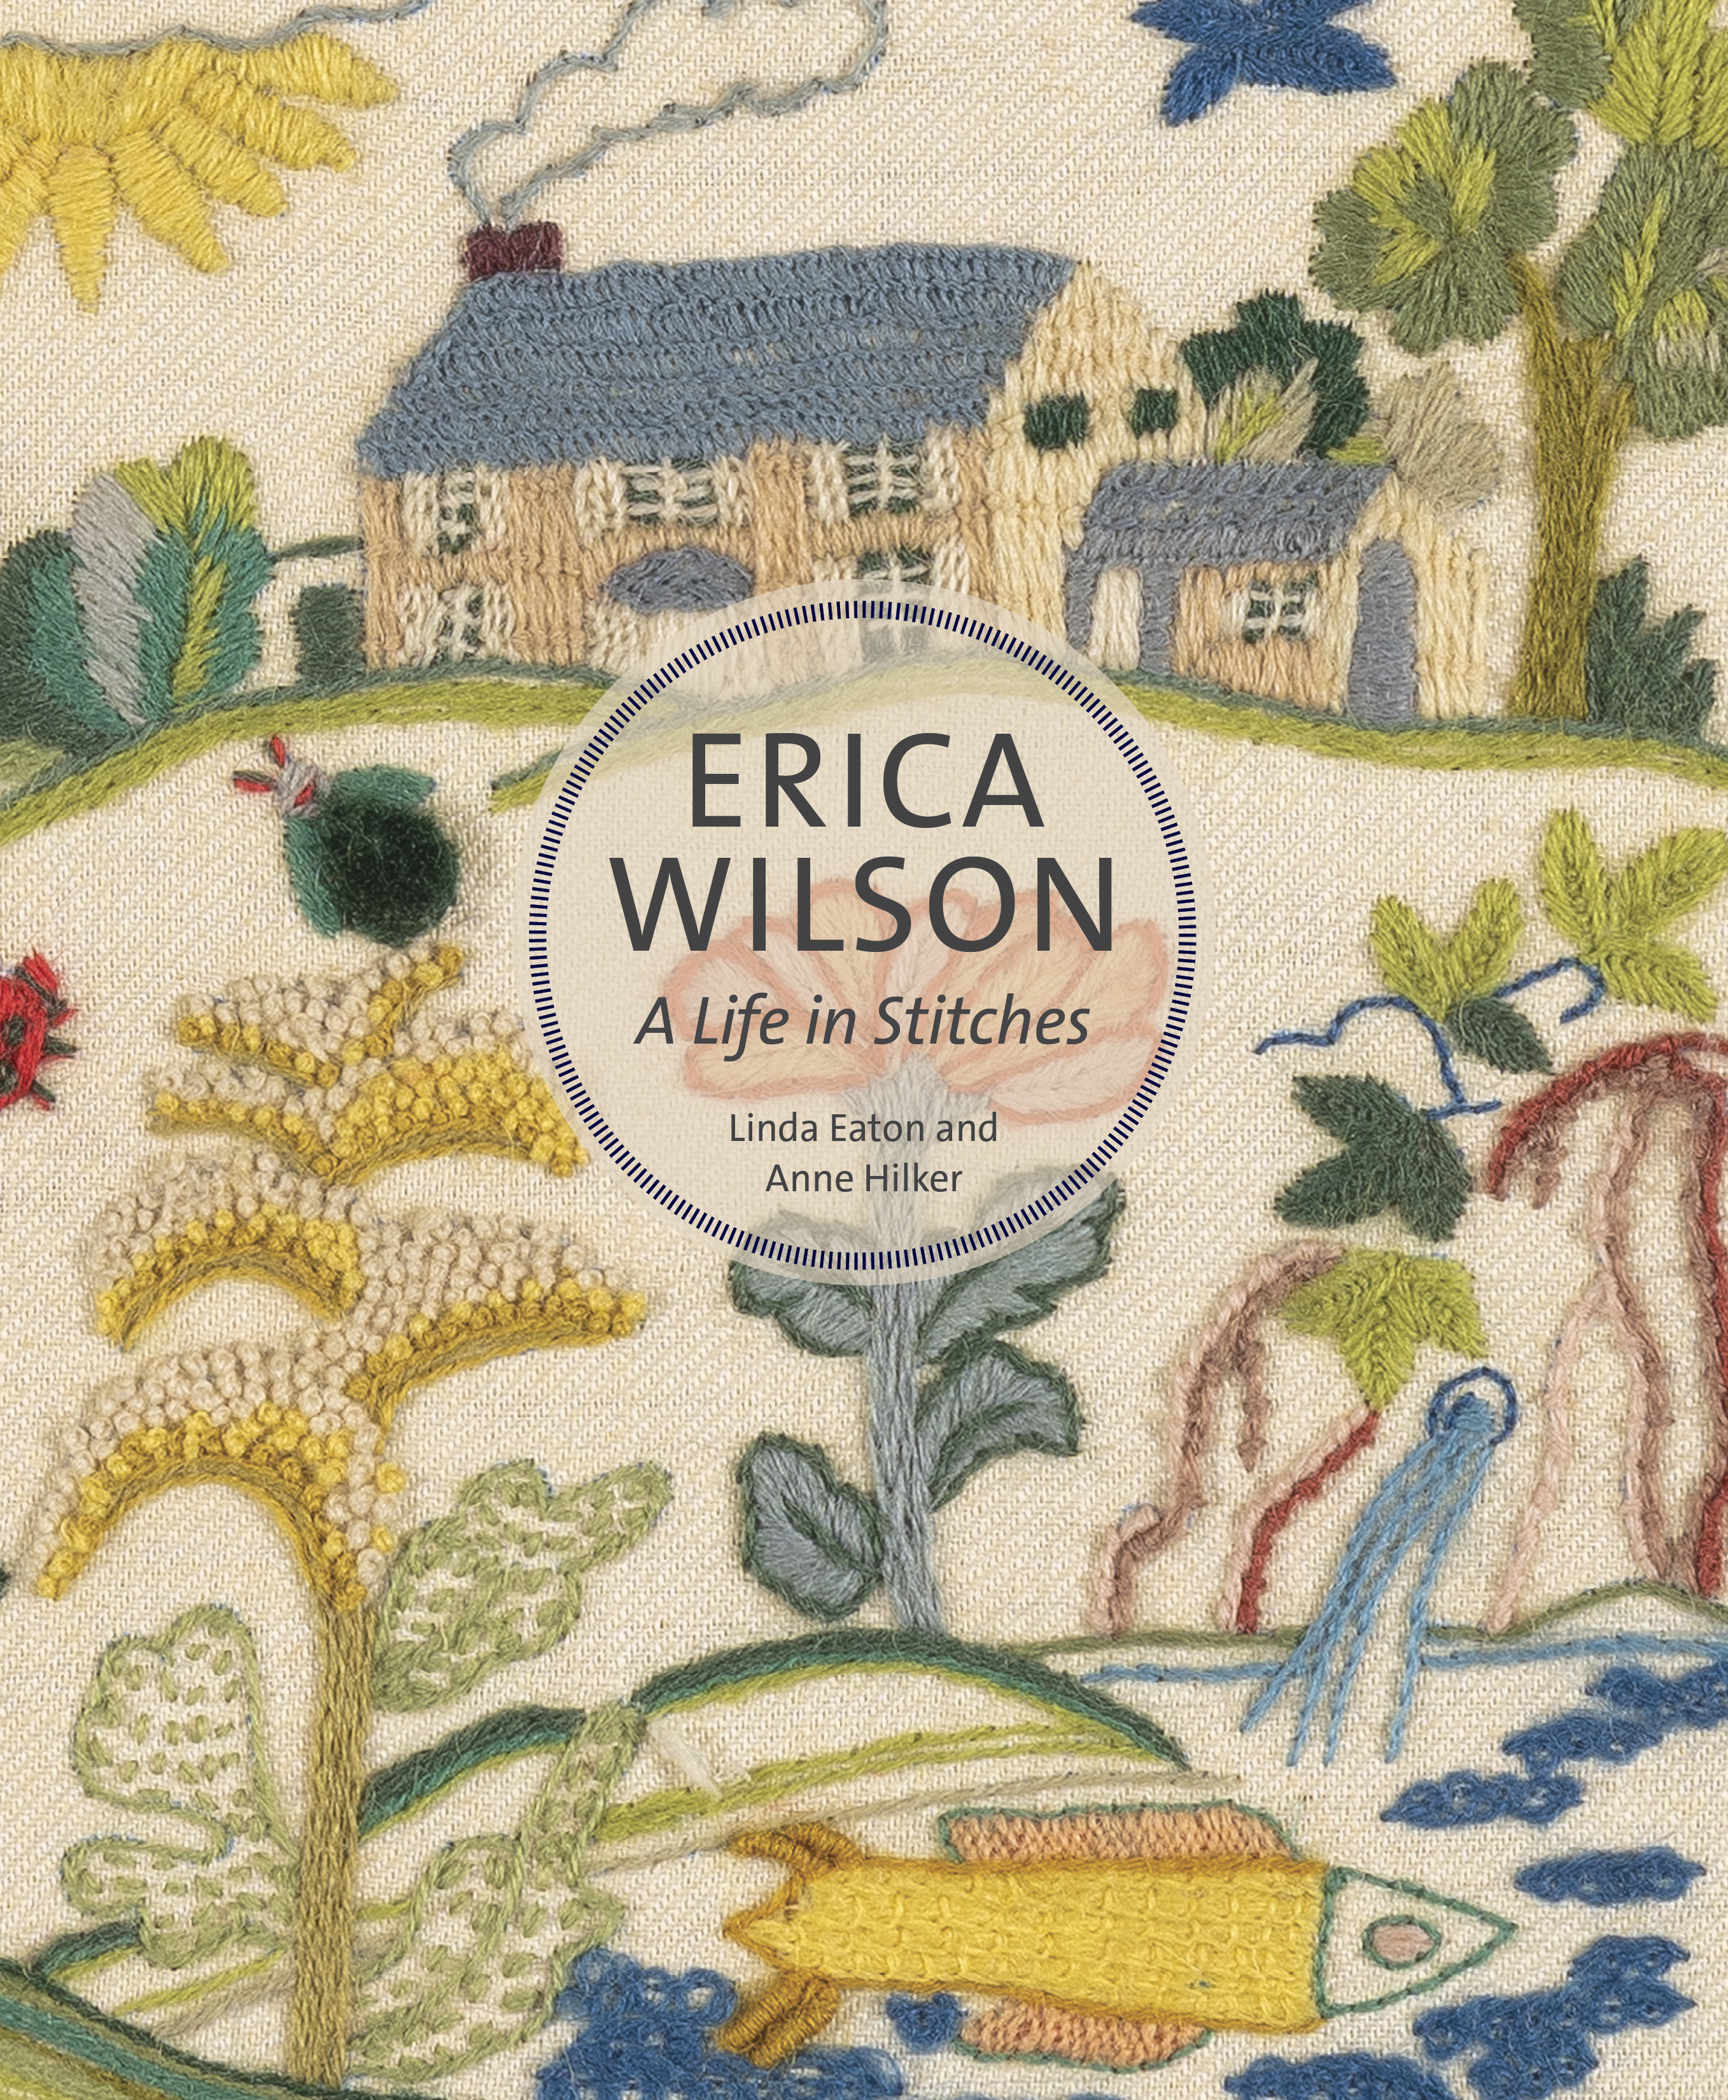 Book image of Erica Wilson: A Life in Stitches